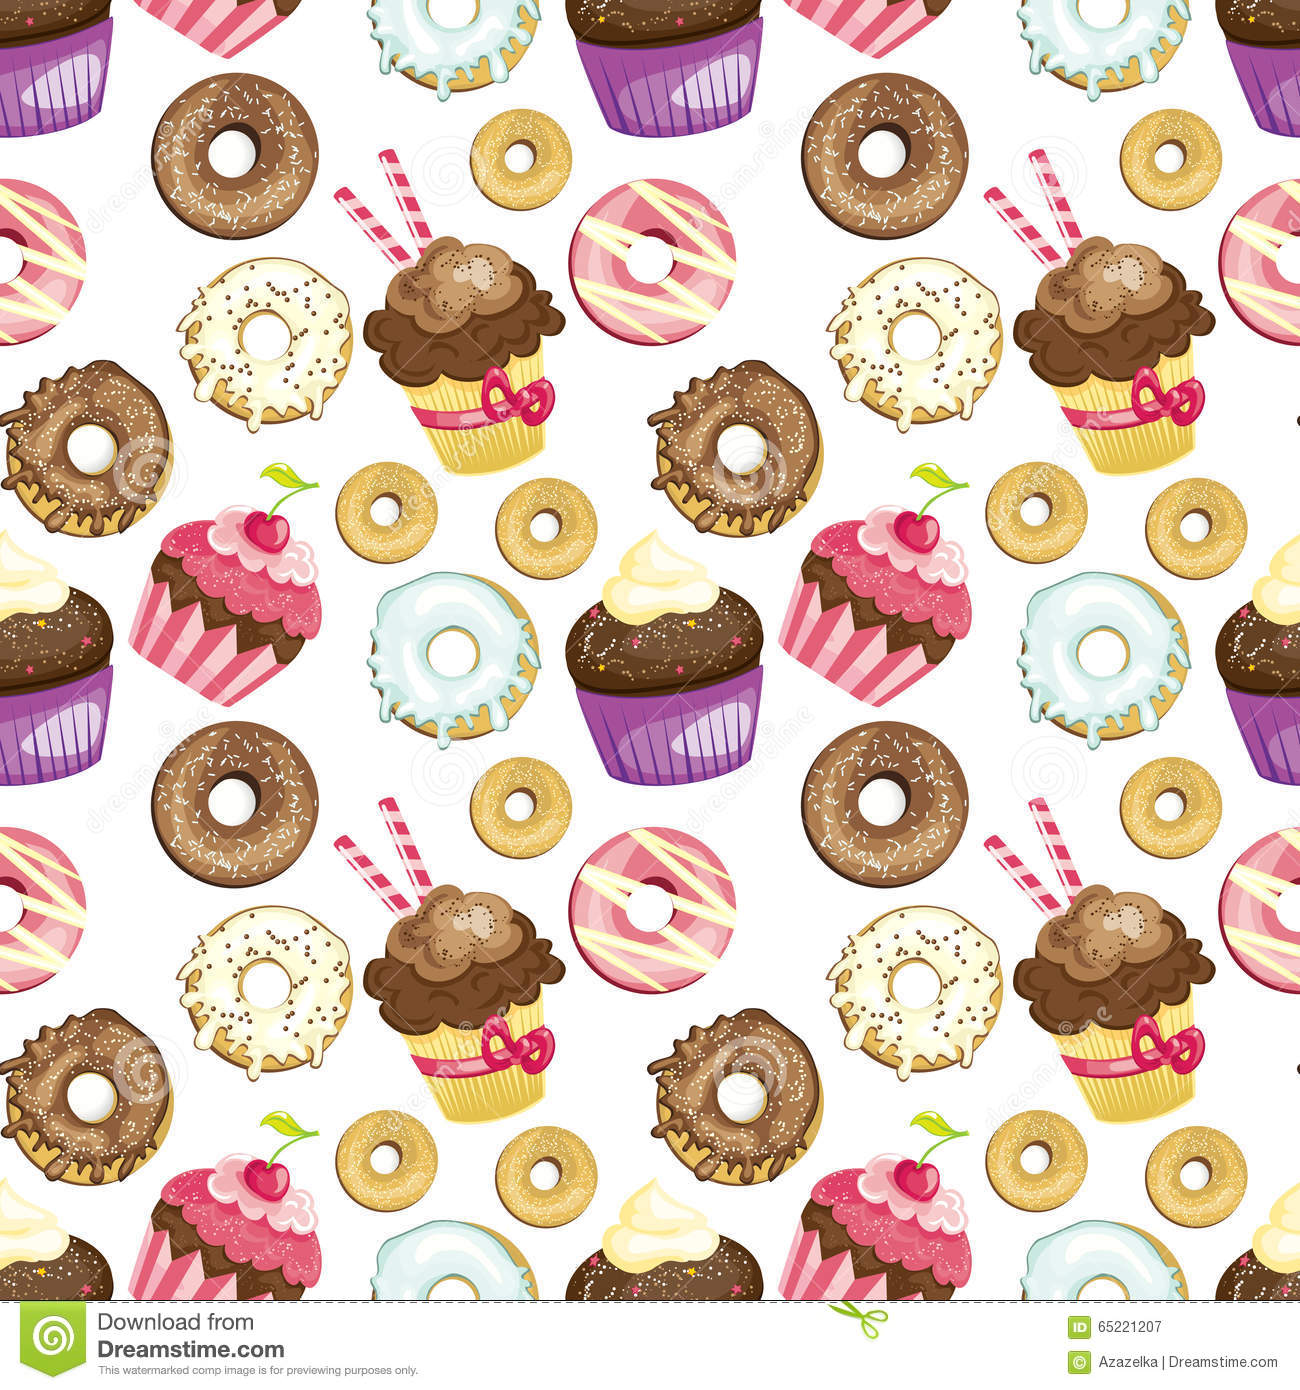 The Simpsons Iphone Wallpaper Seamless Background With Different Sweets And Desserts